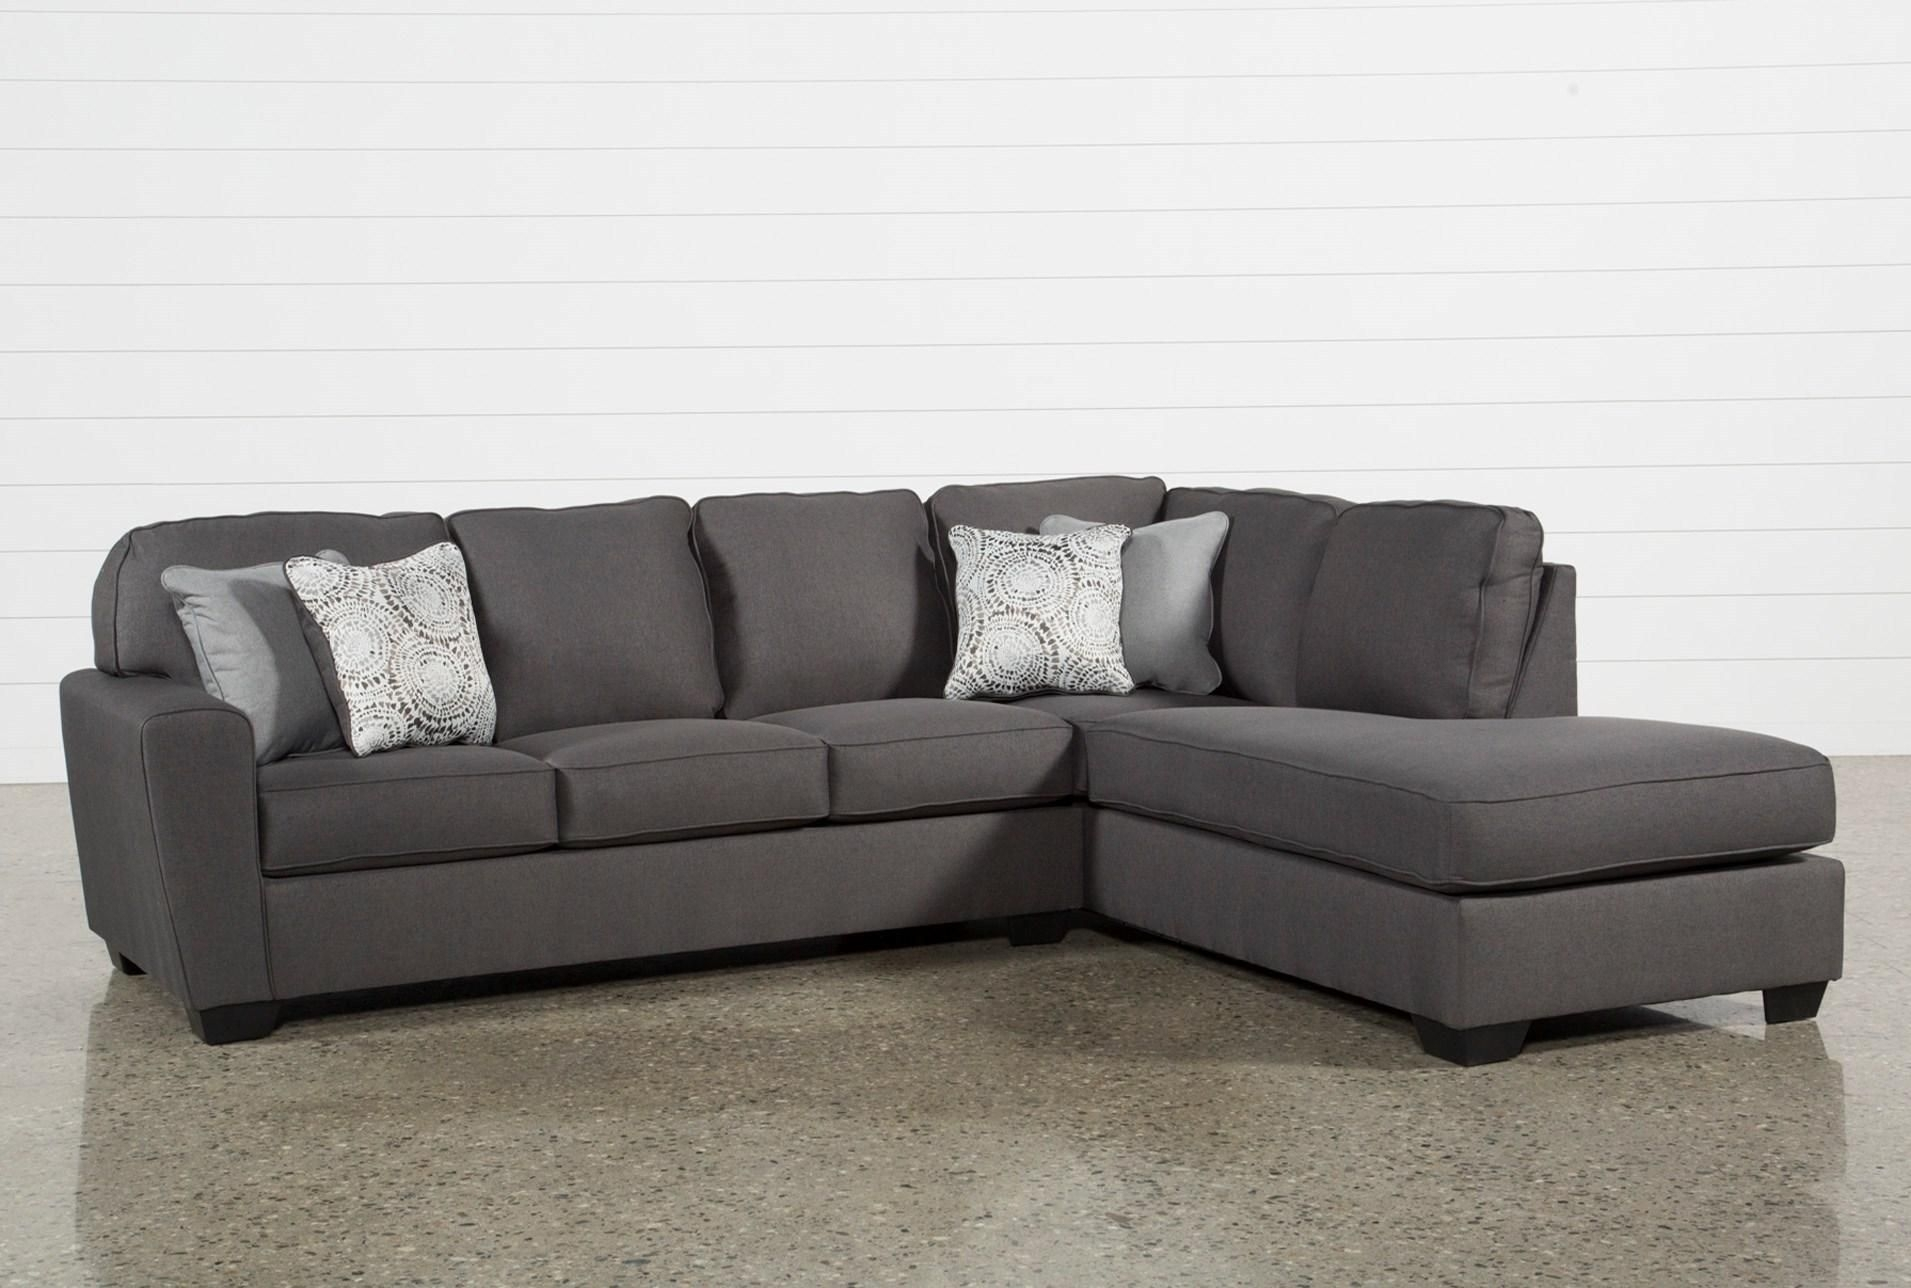 Mcdade Graphite 2 Piece Sectional W/raf Chaise | Livingroom Intended For Arrowmask 2 Piece Sectionals With Sleeper & Left Facing Chaise (Image 18 of 25)